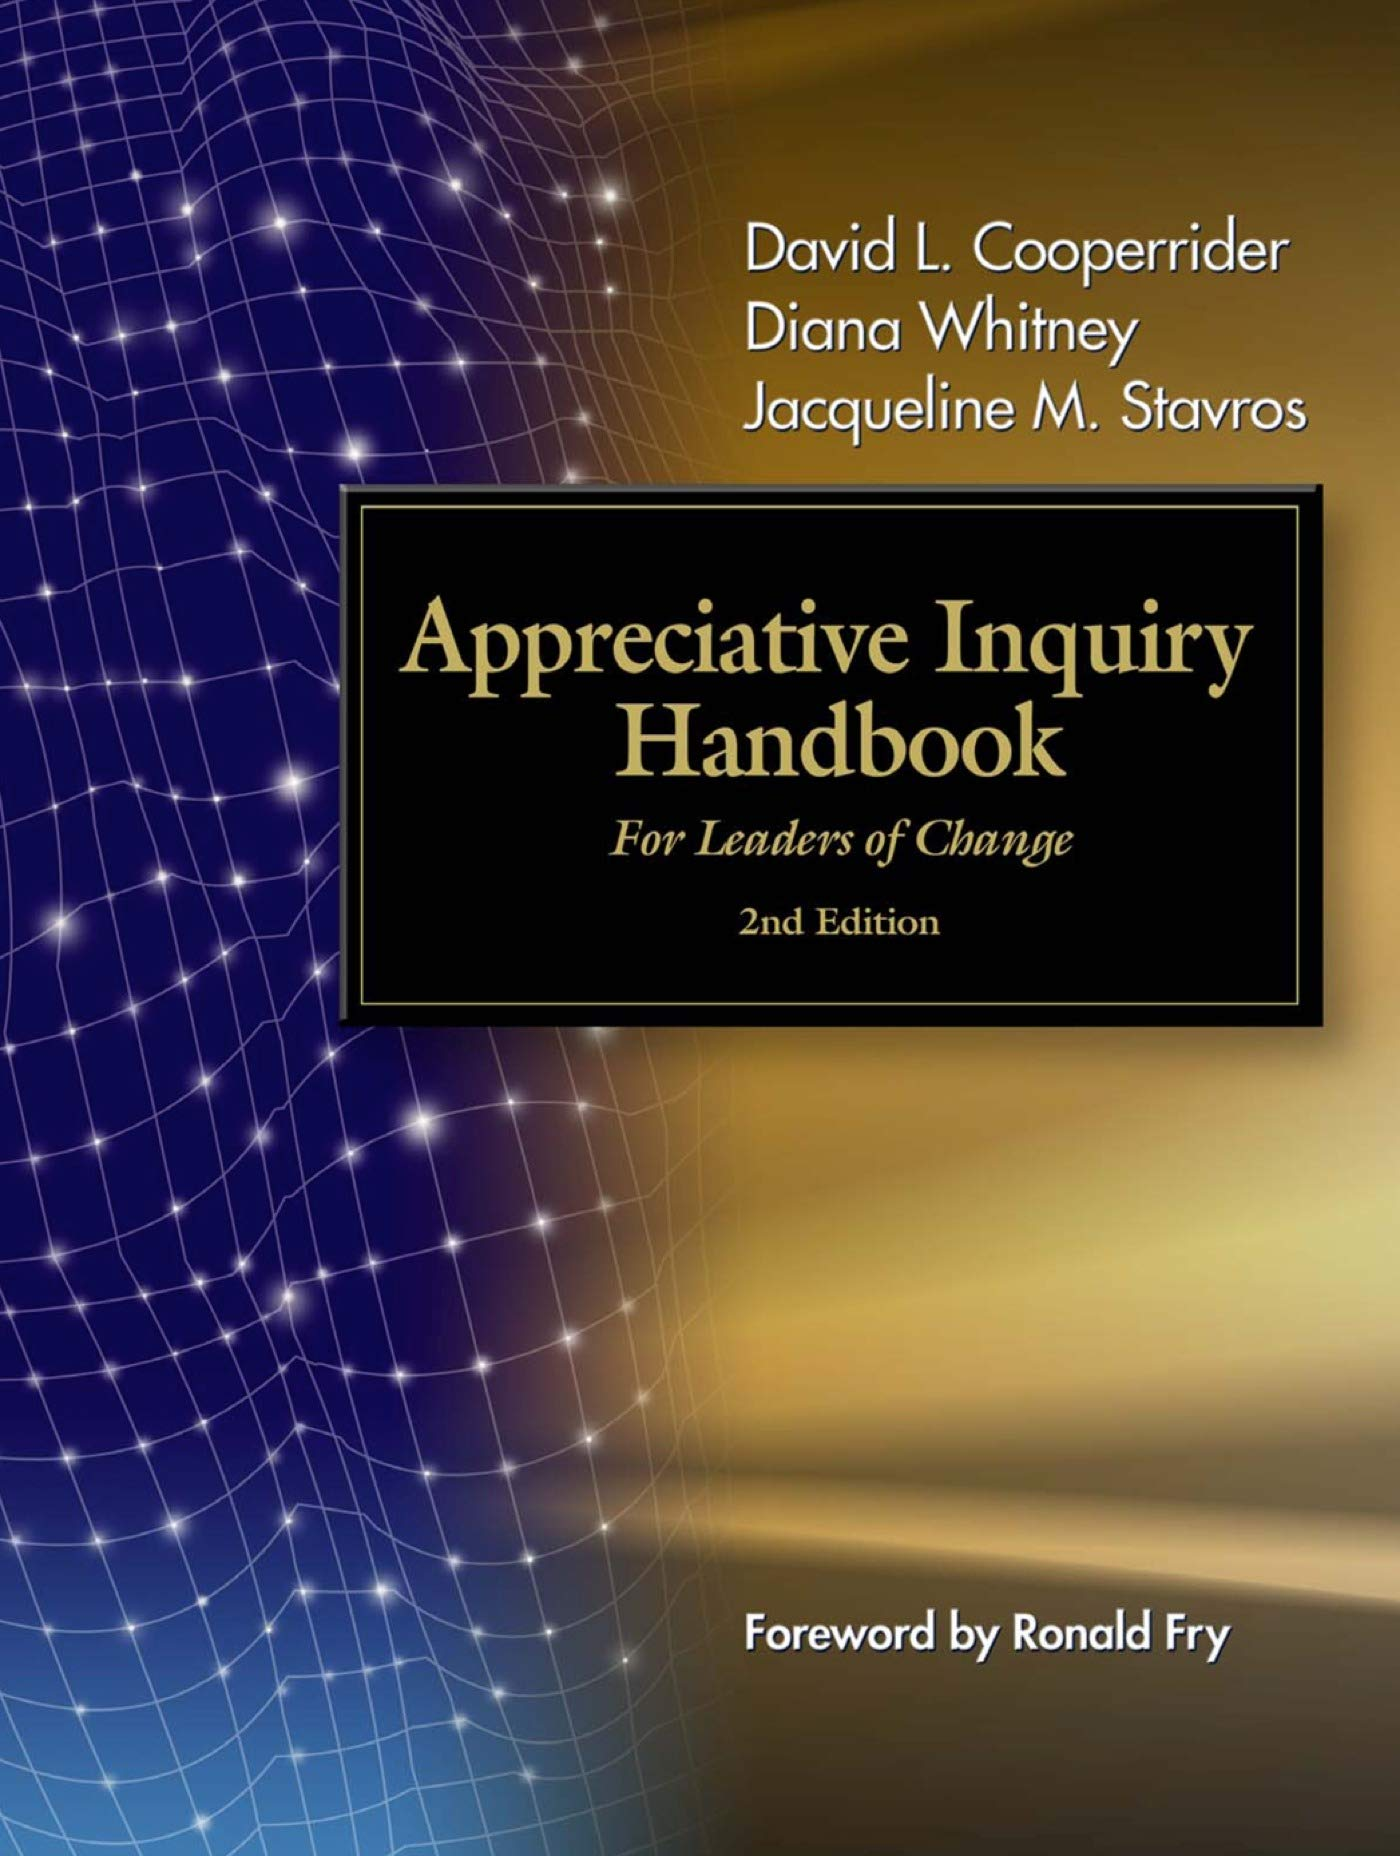 Download Ebook The Appreciative Inquiry Handbook. For Leaders Of Change